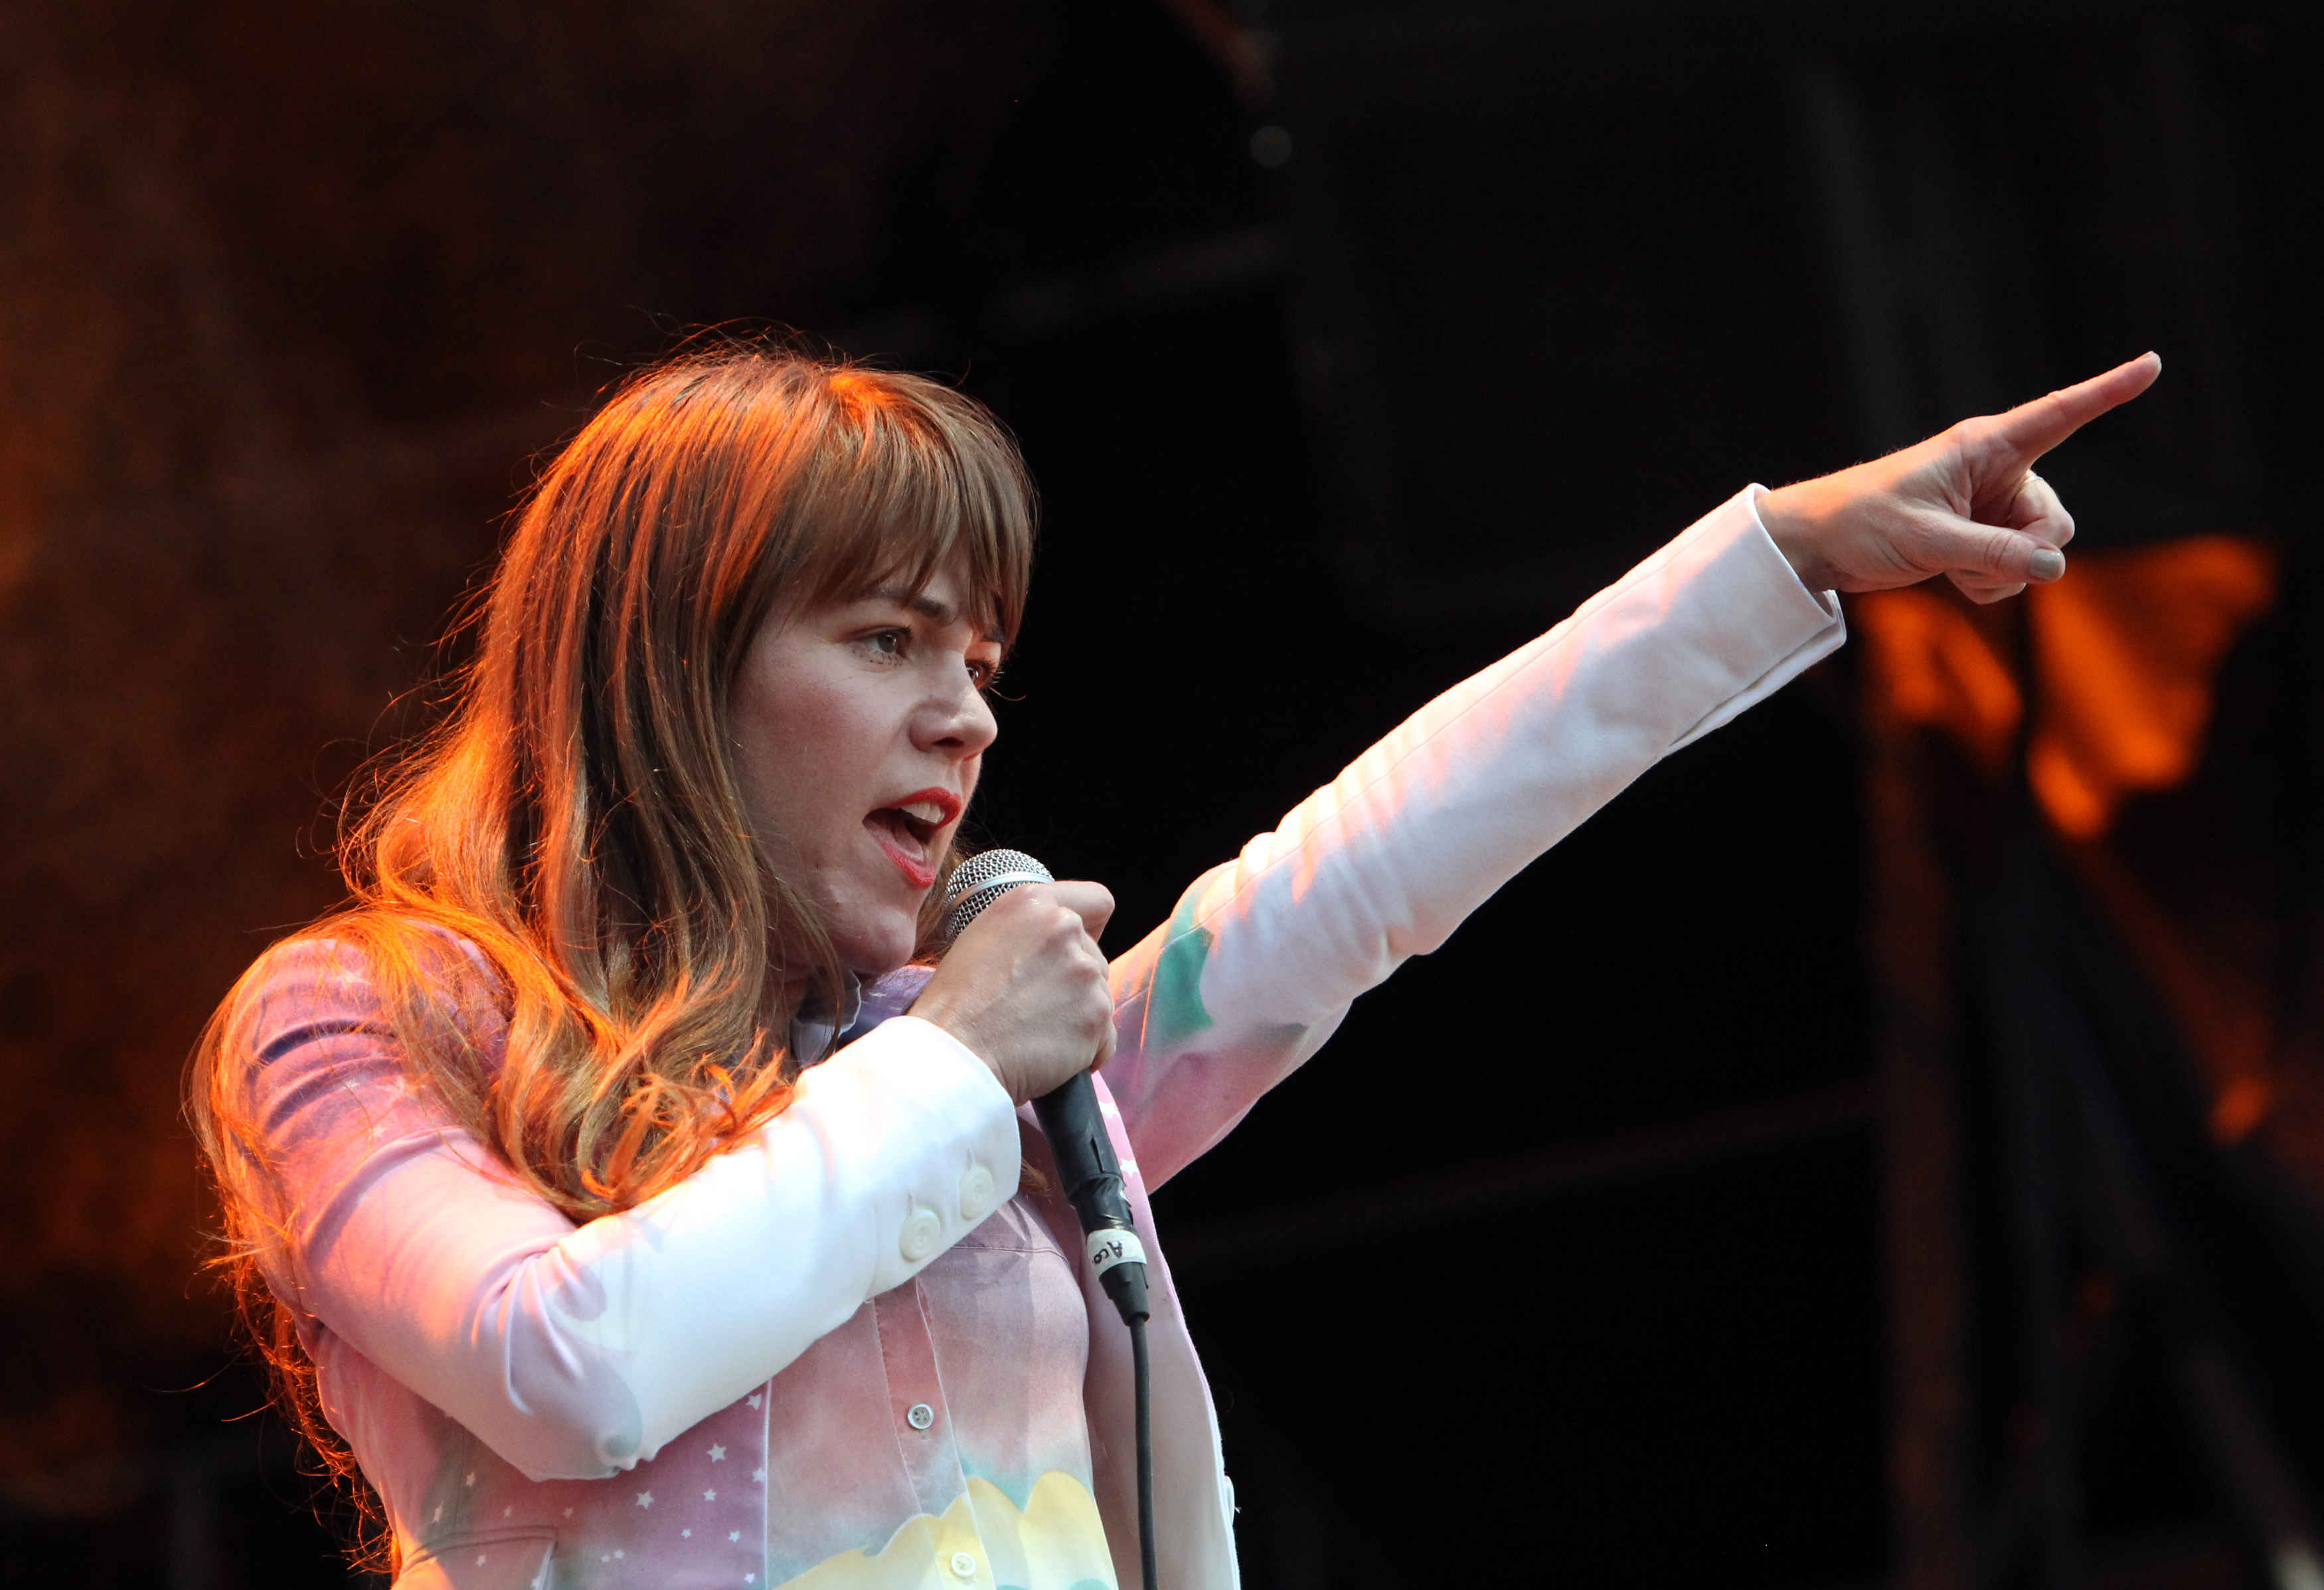 Ð?аÑ?Ñ?инки по запÑ?осÑ? Jenny Lewis 'Deeply Troubled' by Ryan Adams' Alleged Sexual Misconduct